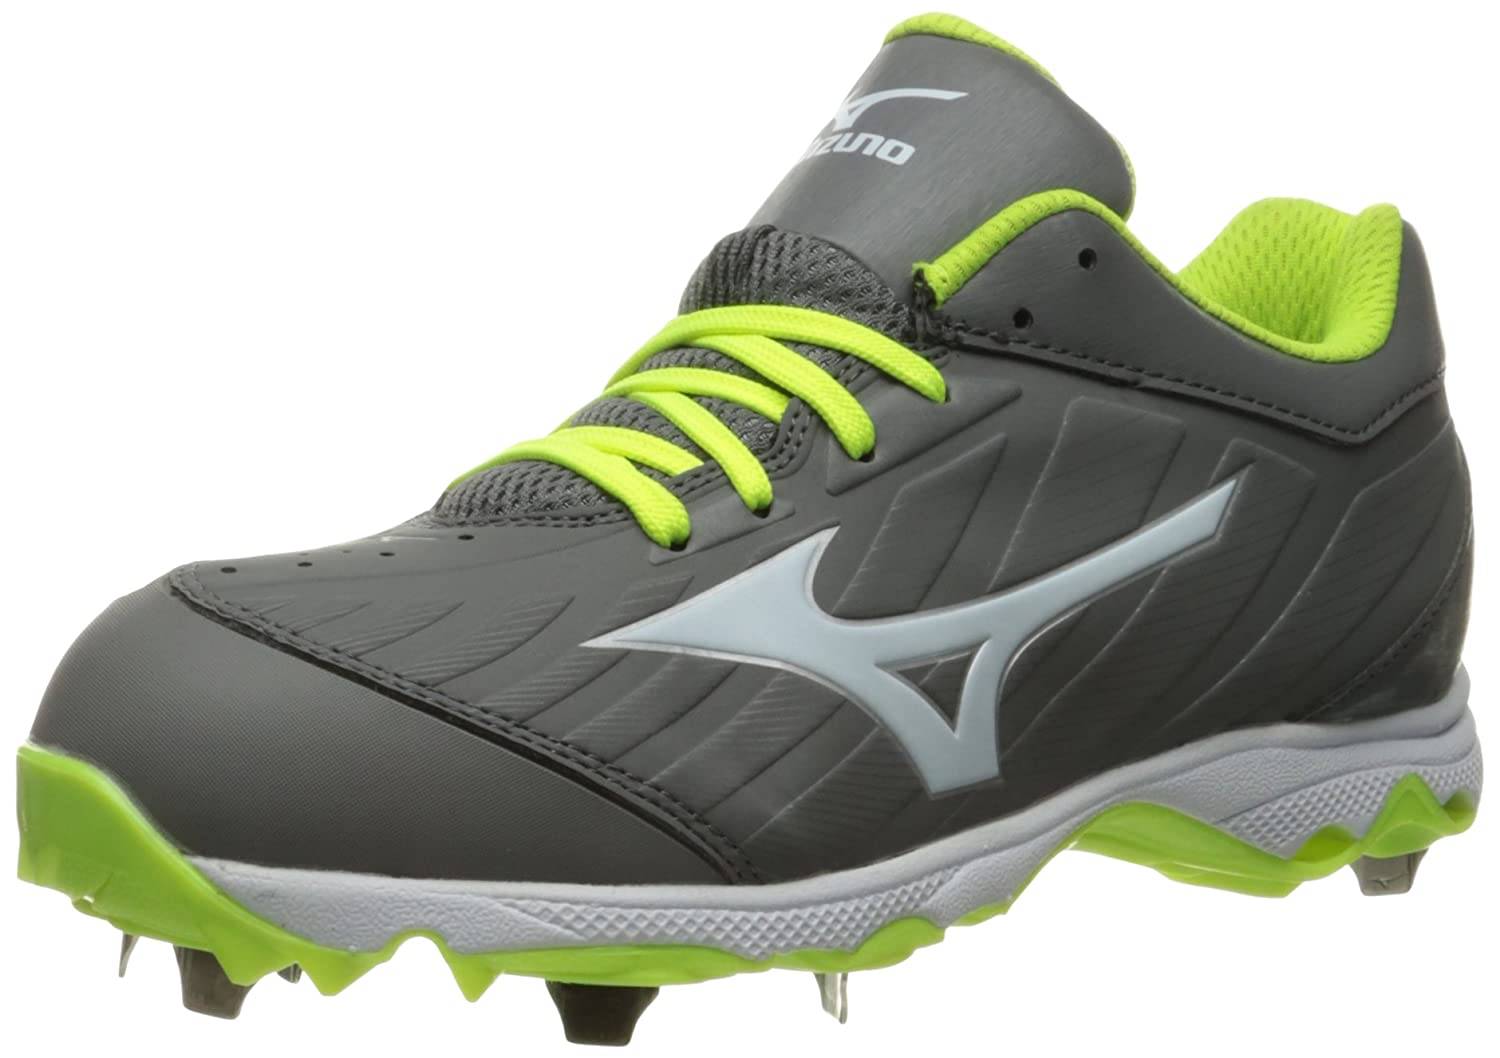 Mizuno Women's 9-Spike Advanced Sweep 3 Softball Shoe B01HQE2LXQ 9 W US|Grey/White